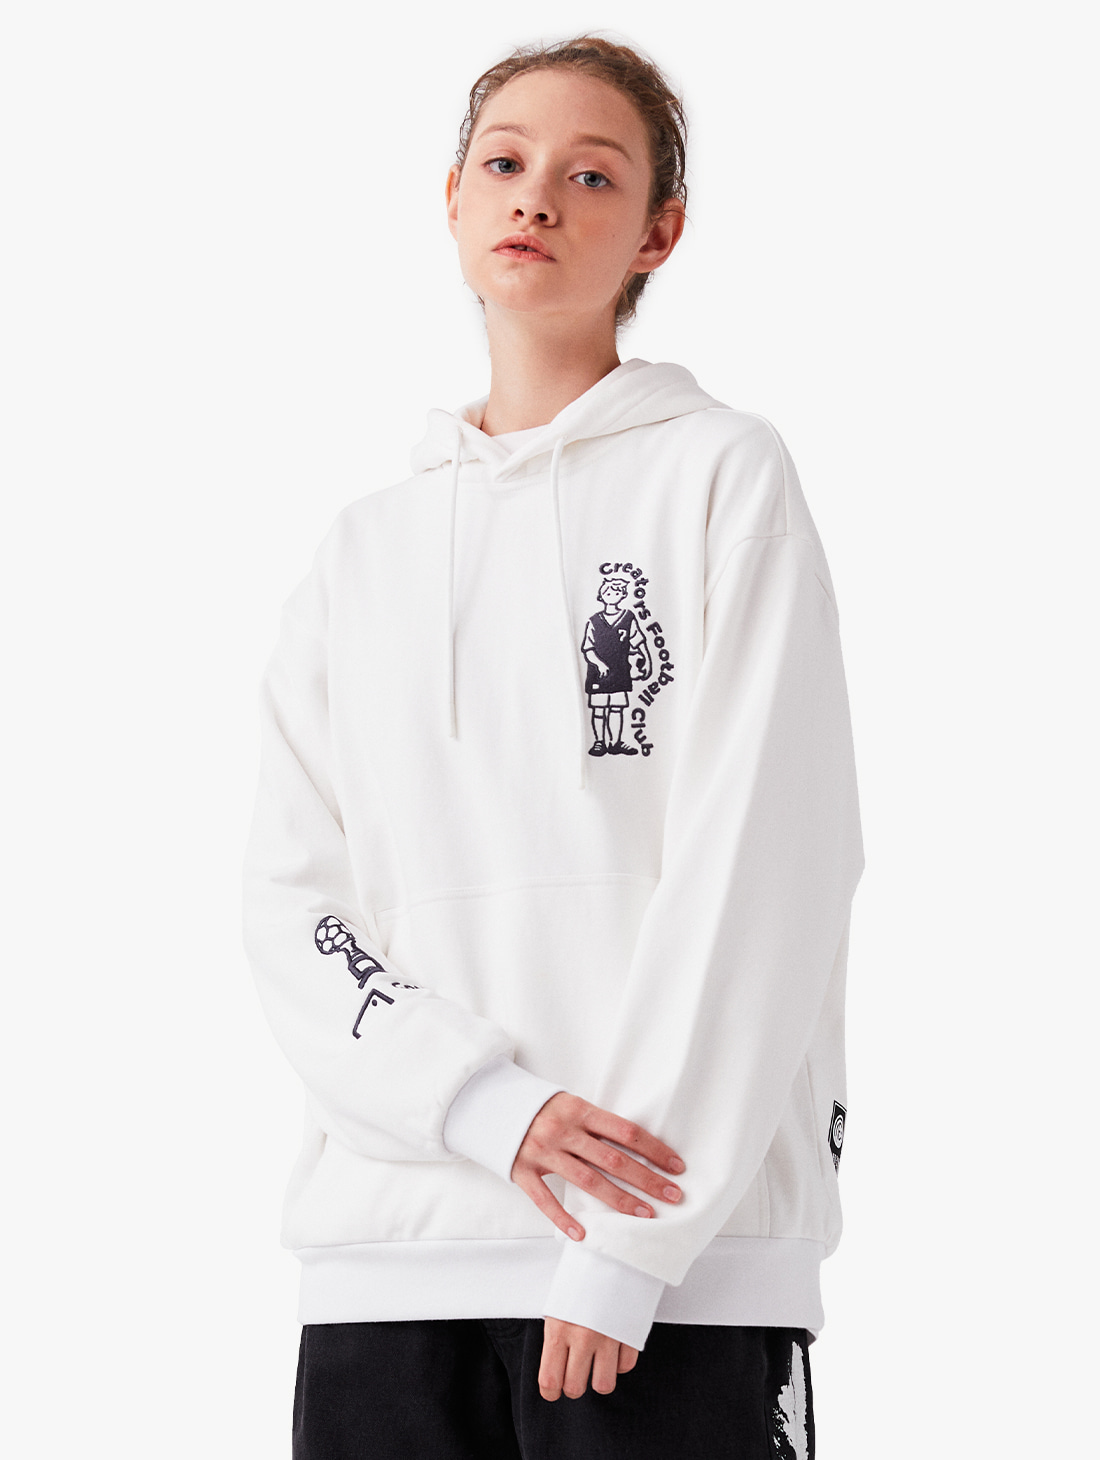 GOALSTUDIO CFC BOY ARTWORK  HOODIE (2 Colors)